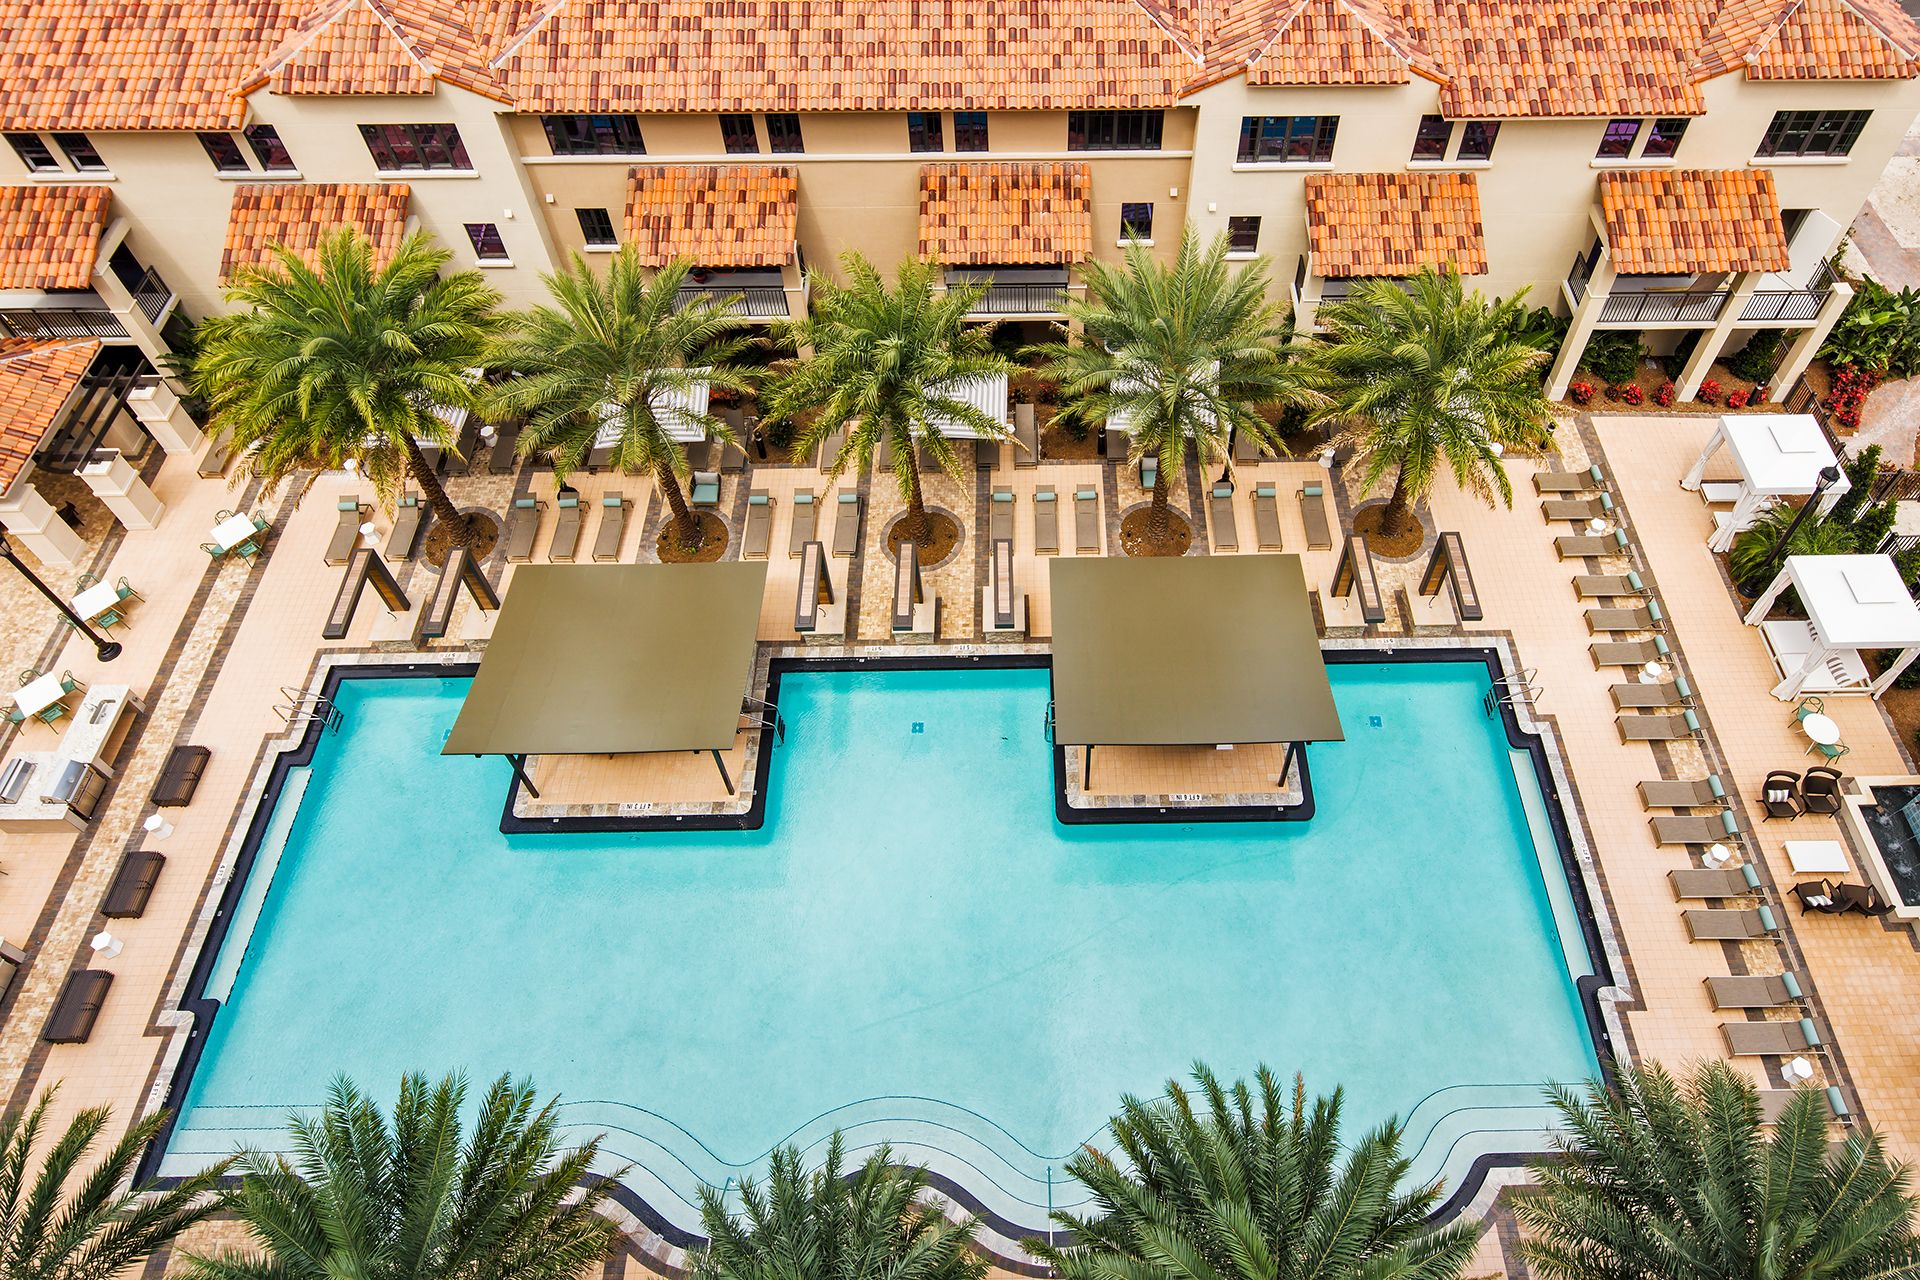 Aerial view of swimming pool with seating and cabanas